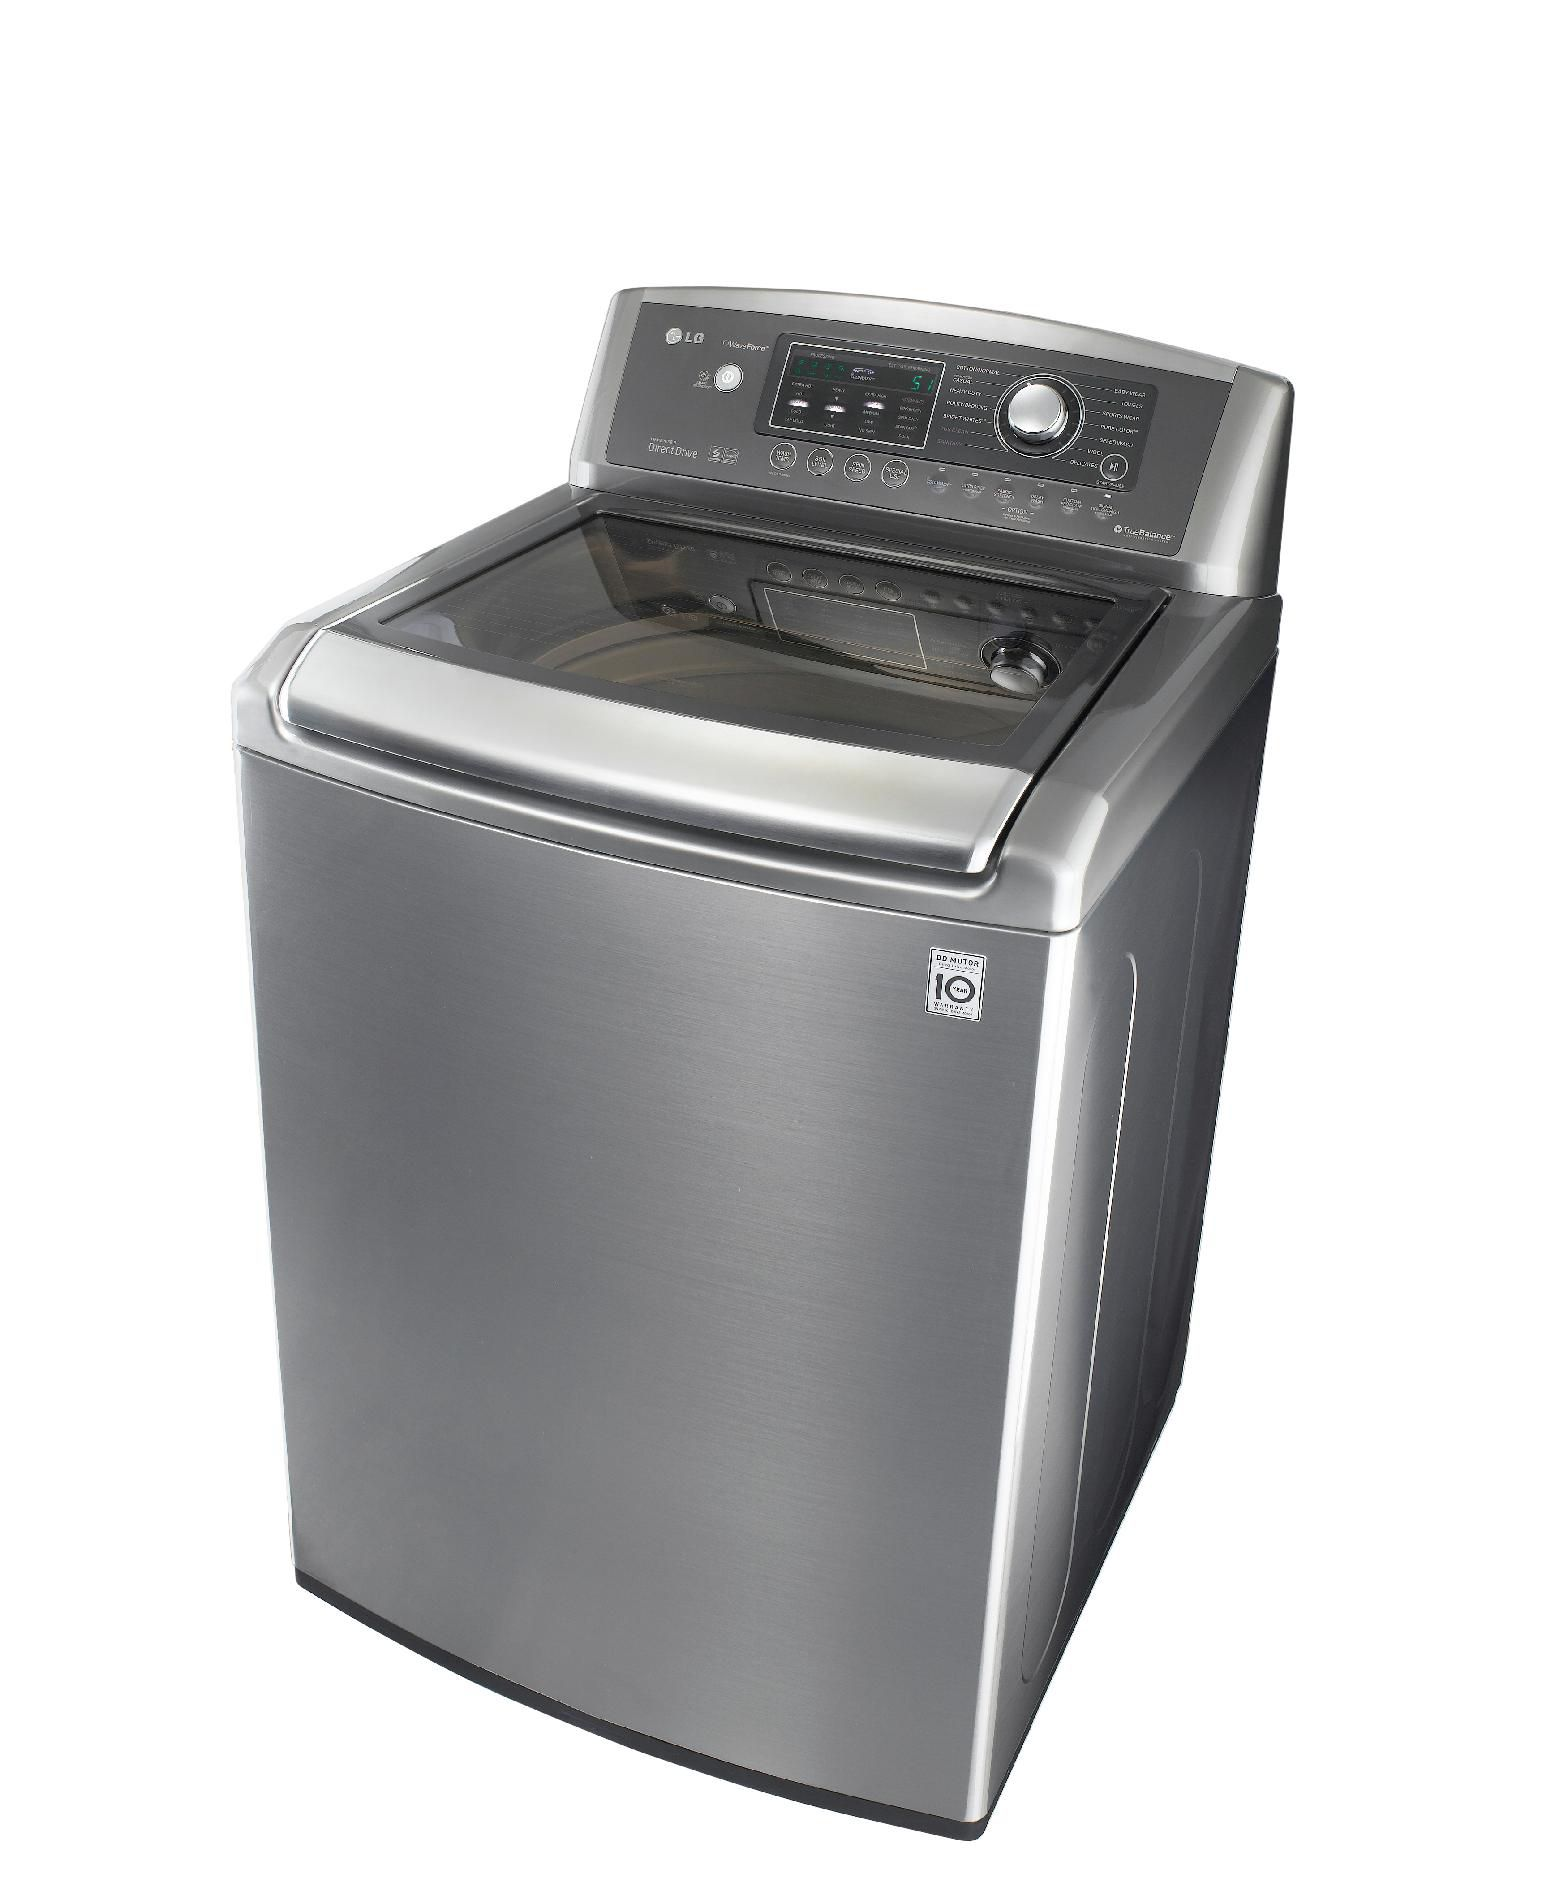 LG 4.7 cu. ft. Ultra Large Capacity High-Efficiency Top Load Washer w/ WaveForce™ - Graphite Steel